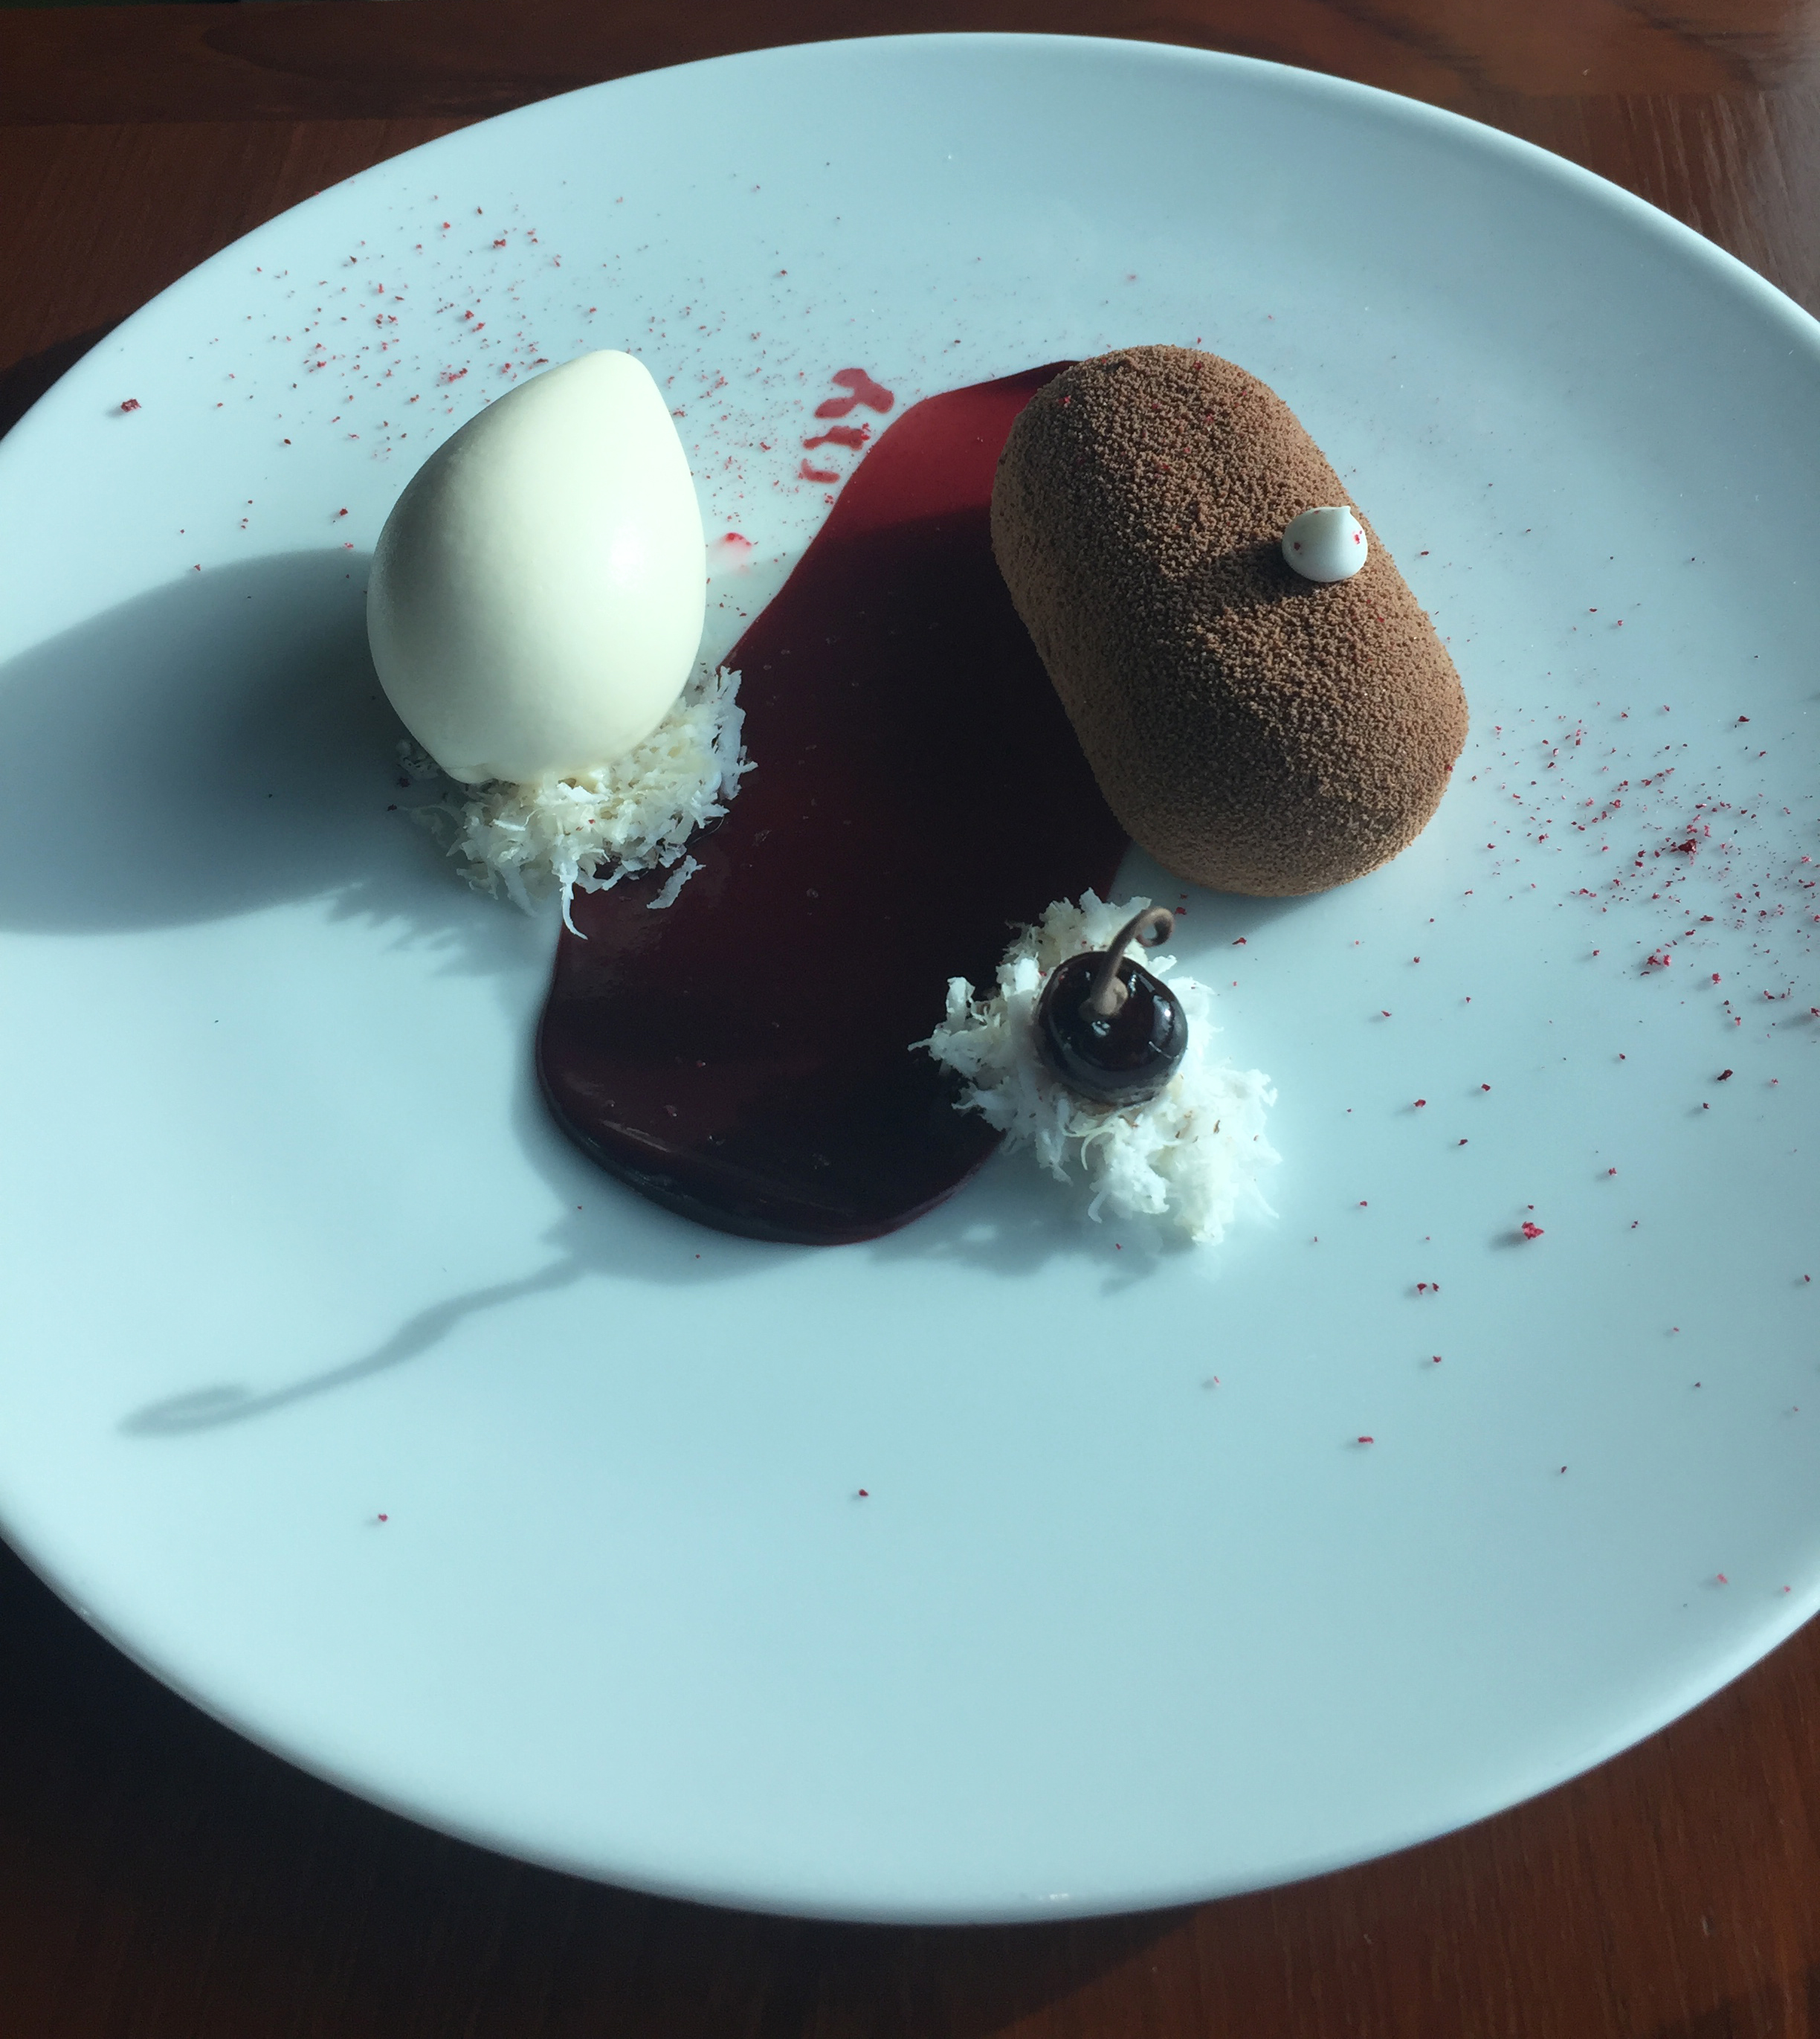 DESSERT - Cherry Isle Bar (c.1650): Chocolate, coconut, 'ripe cherry', almond and bay leaf ice cream